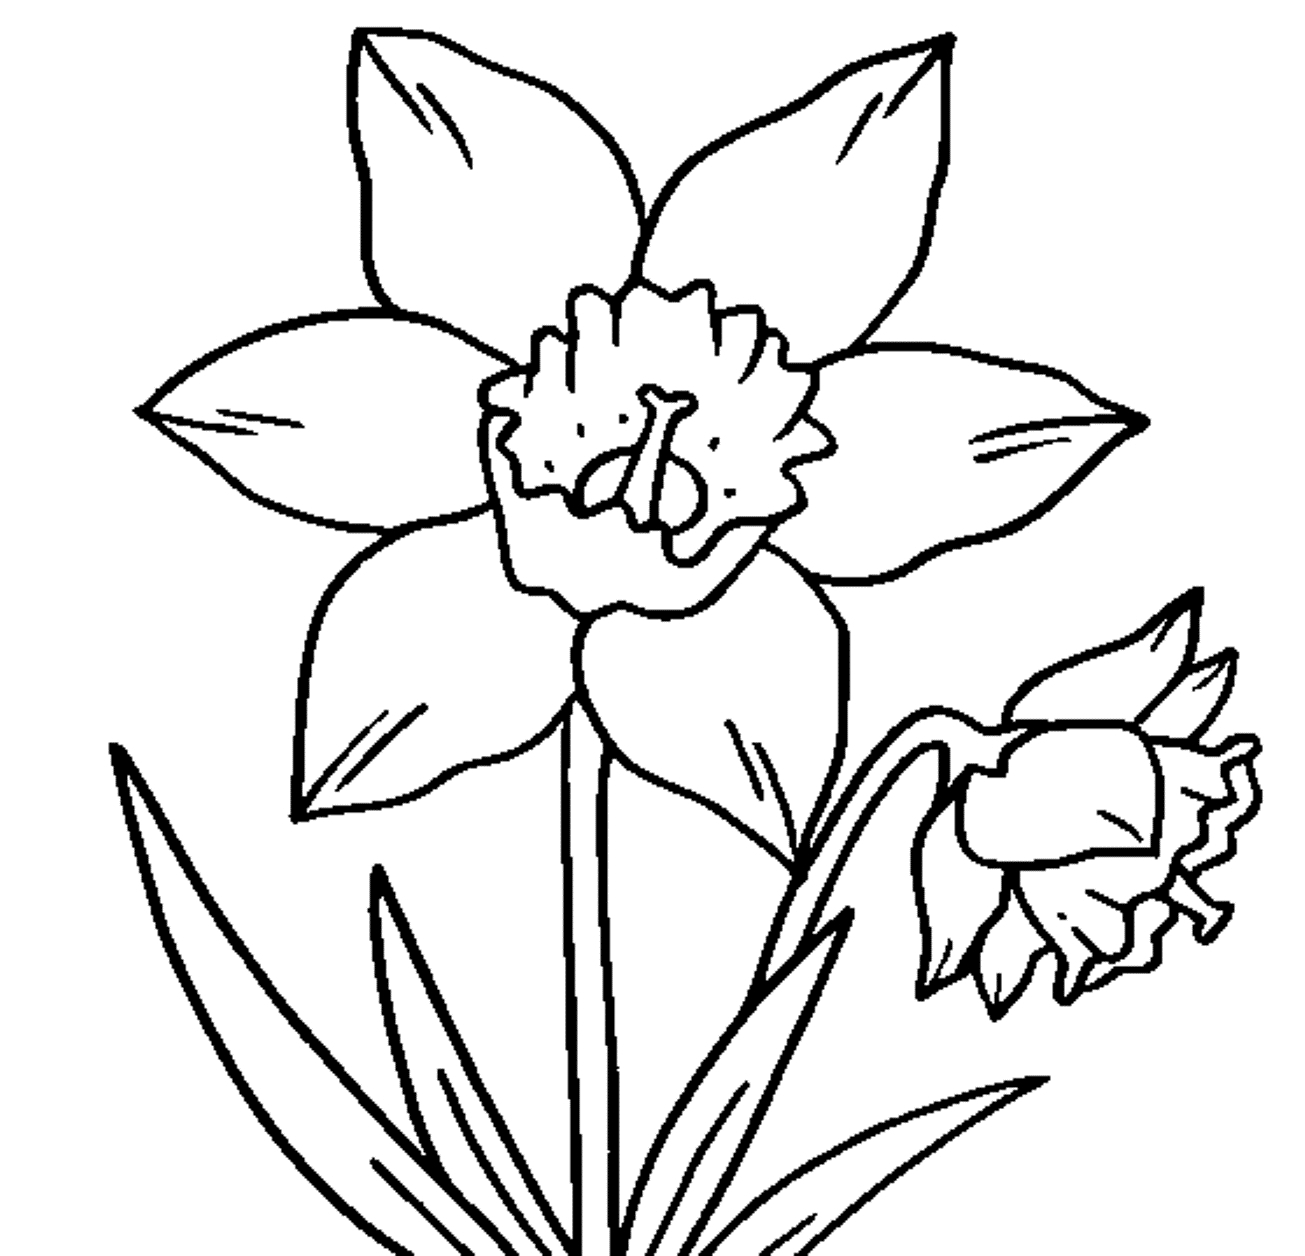 Daffodils Coloring Pages to Print 20q - To print for your project